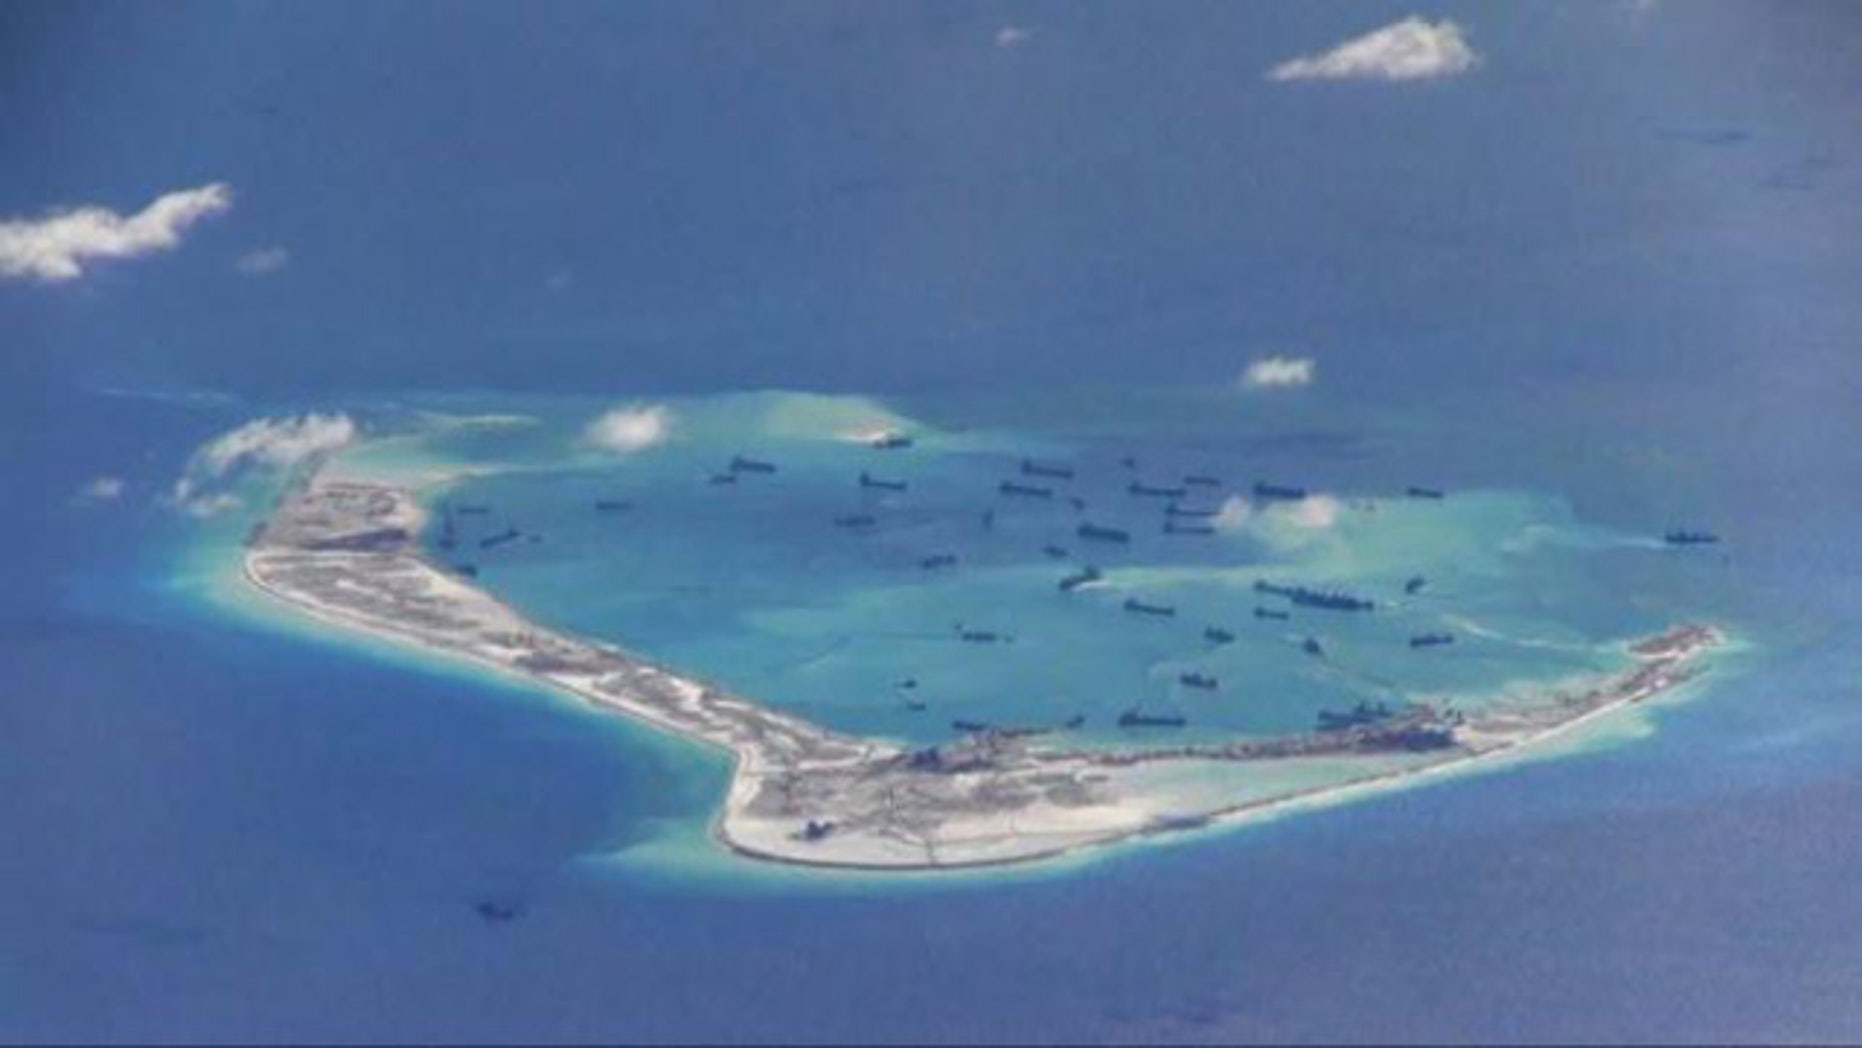 May 21, 2015: Chinese dredging vessels are purportedly seen in the waters around Mischief Reef in the disputed Spratly Islands in the South China Sea in this still image from video taken by a P-8A Poseidon surveillance aircraft. (U.S. Navy)